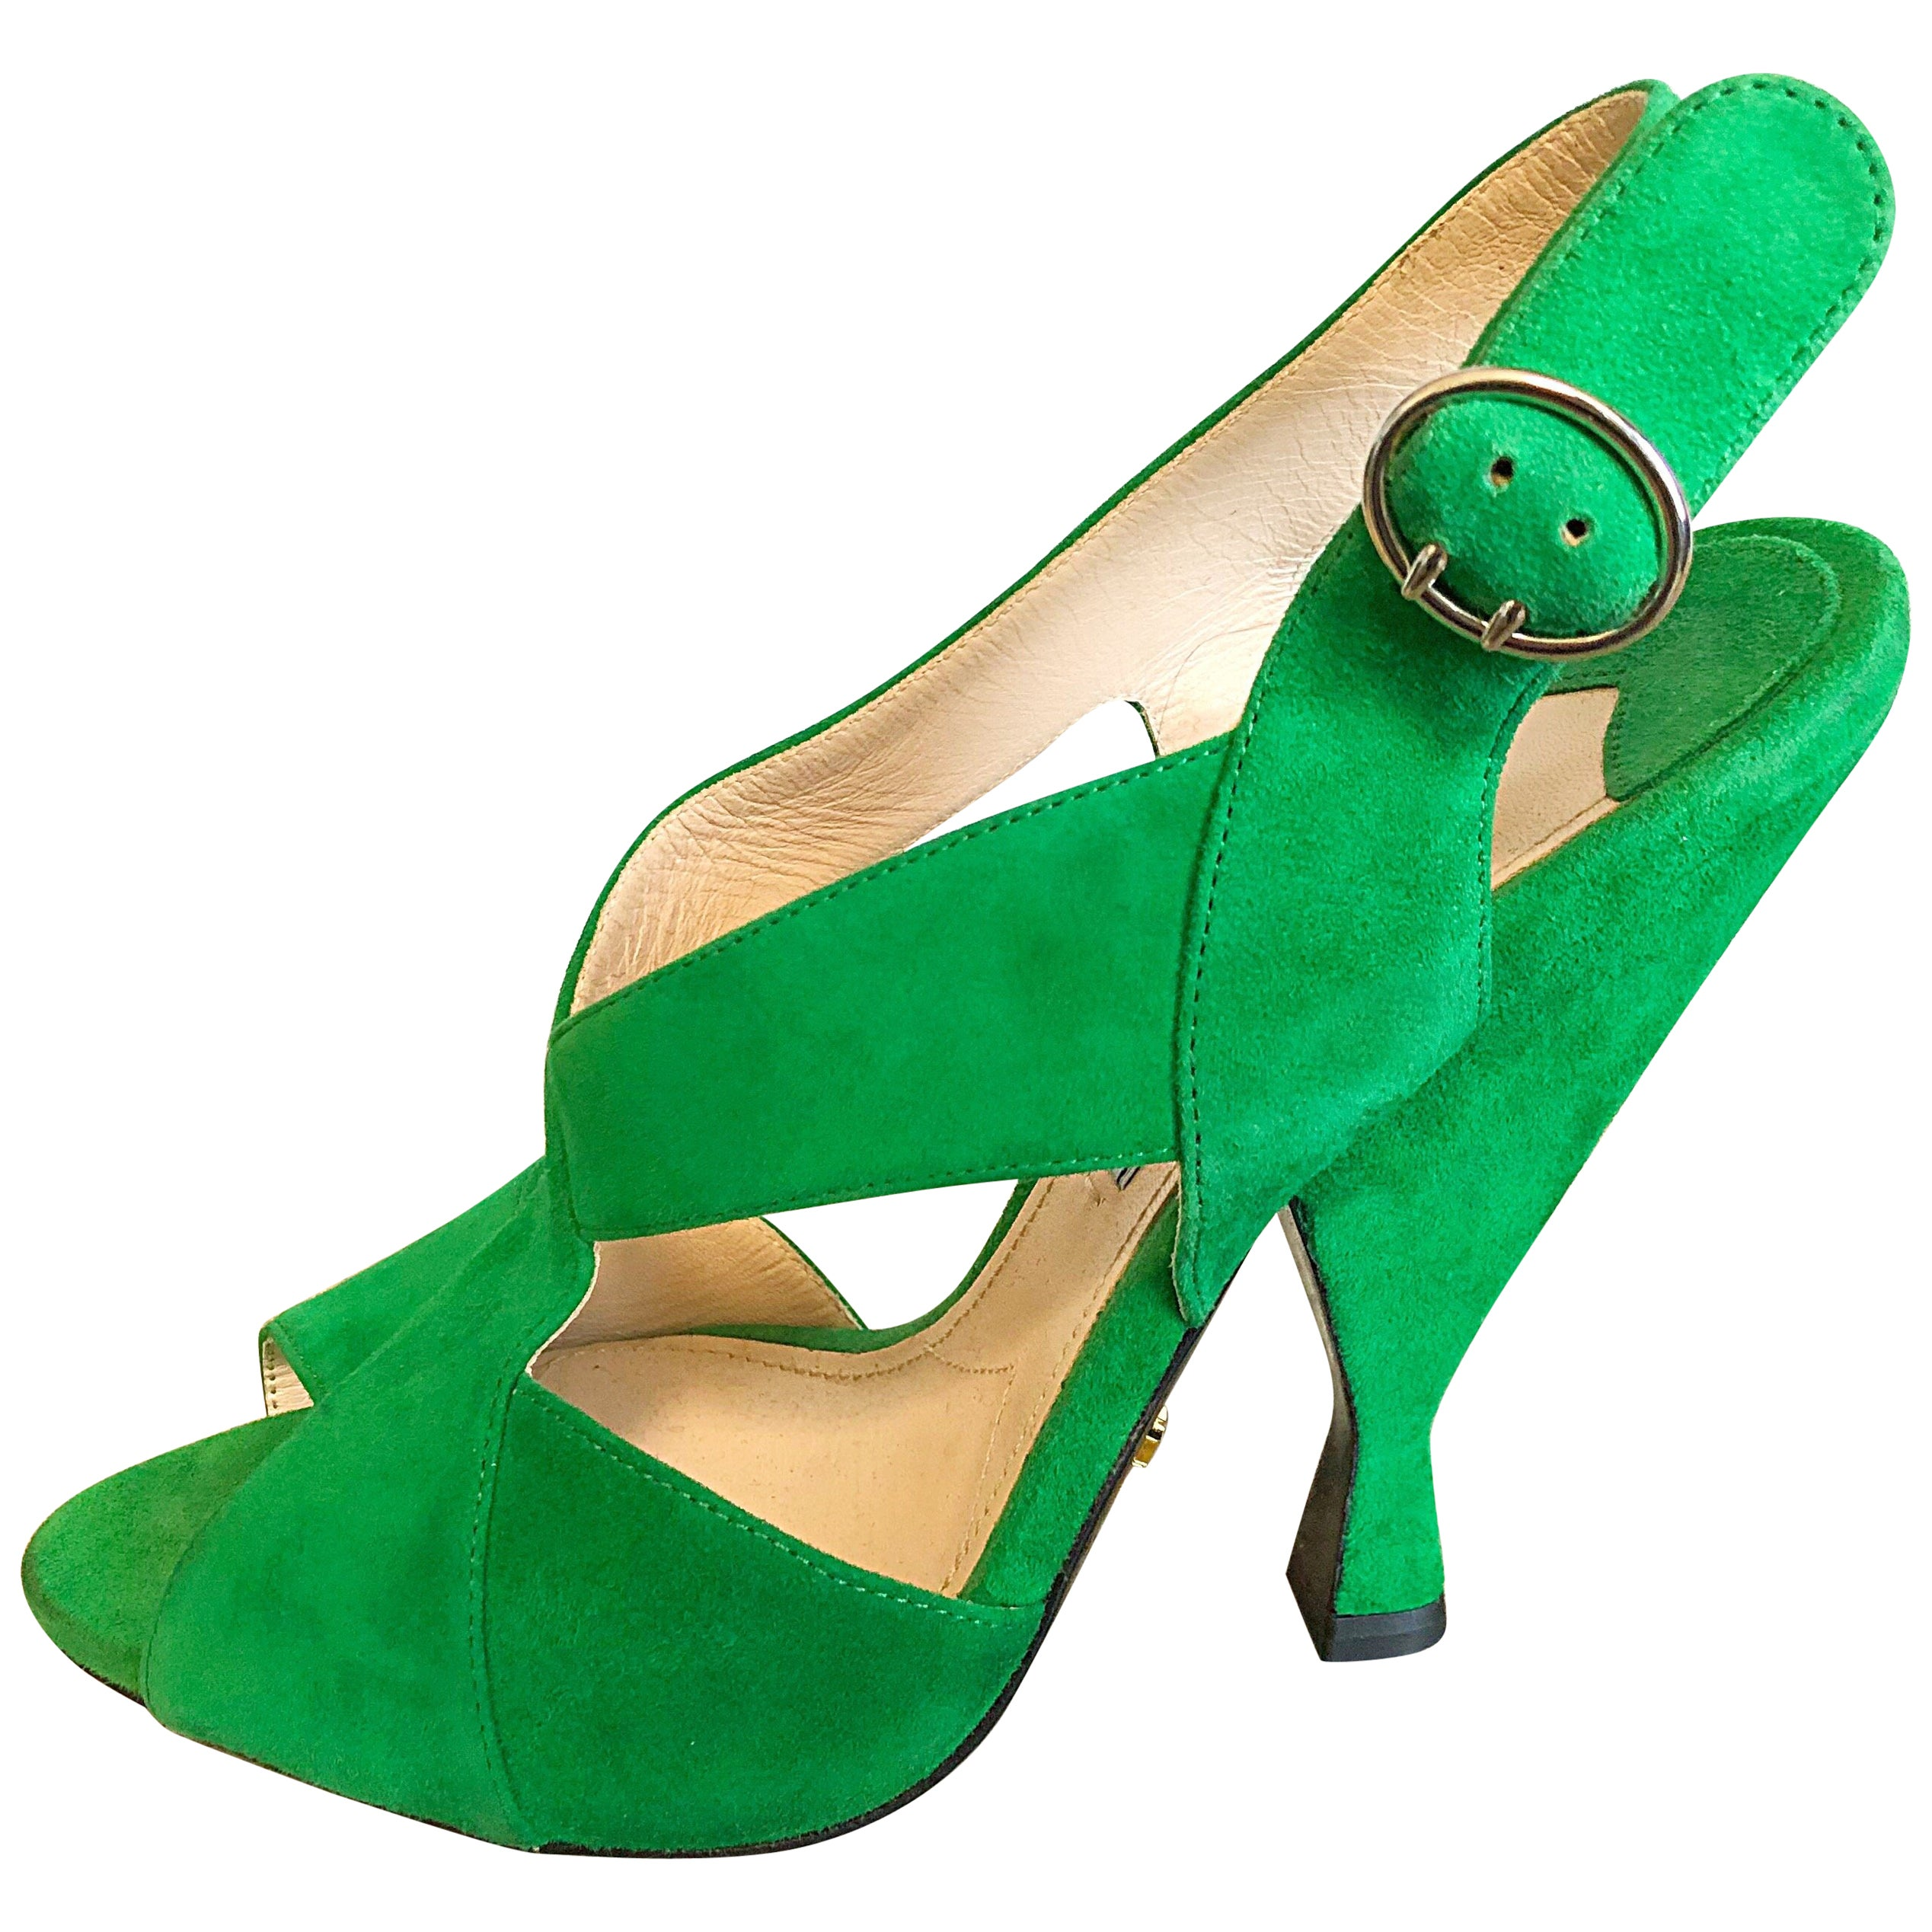 New Prada Size 36.5 / 6.5 Runway Kelly Green Suede Sandal High Heels Shoes